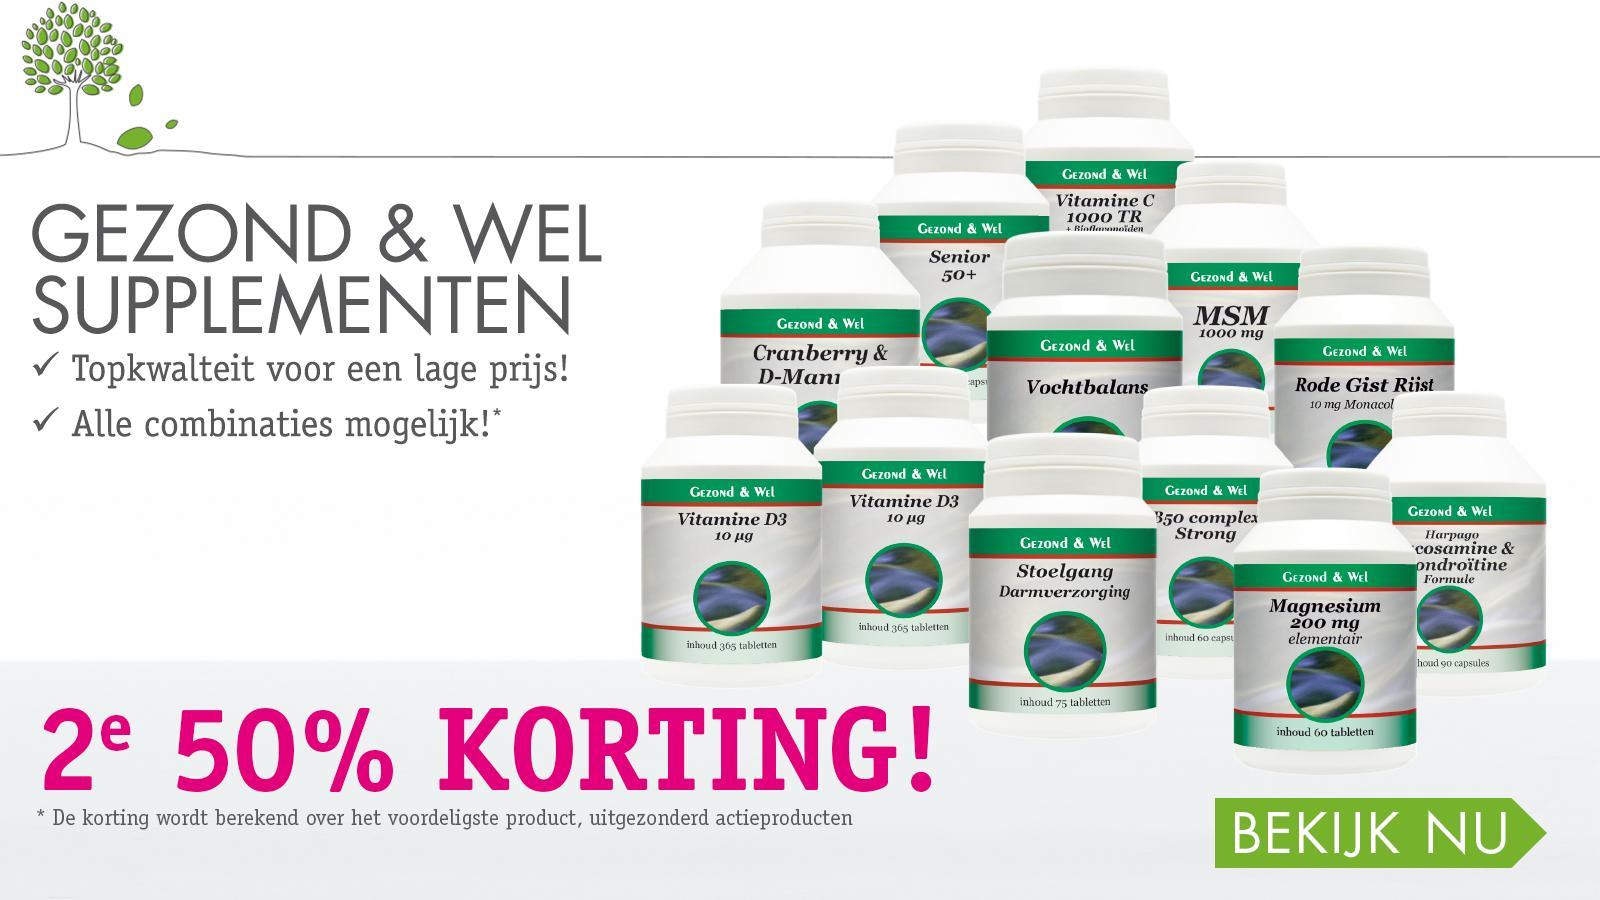 supplementen-Week-38-GW-BANNER-HOME-MAIN-1600x900-03